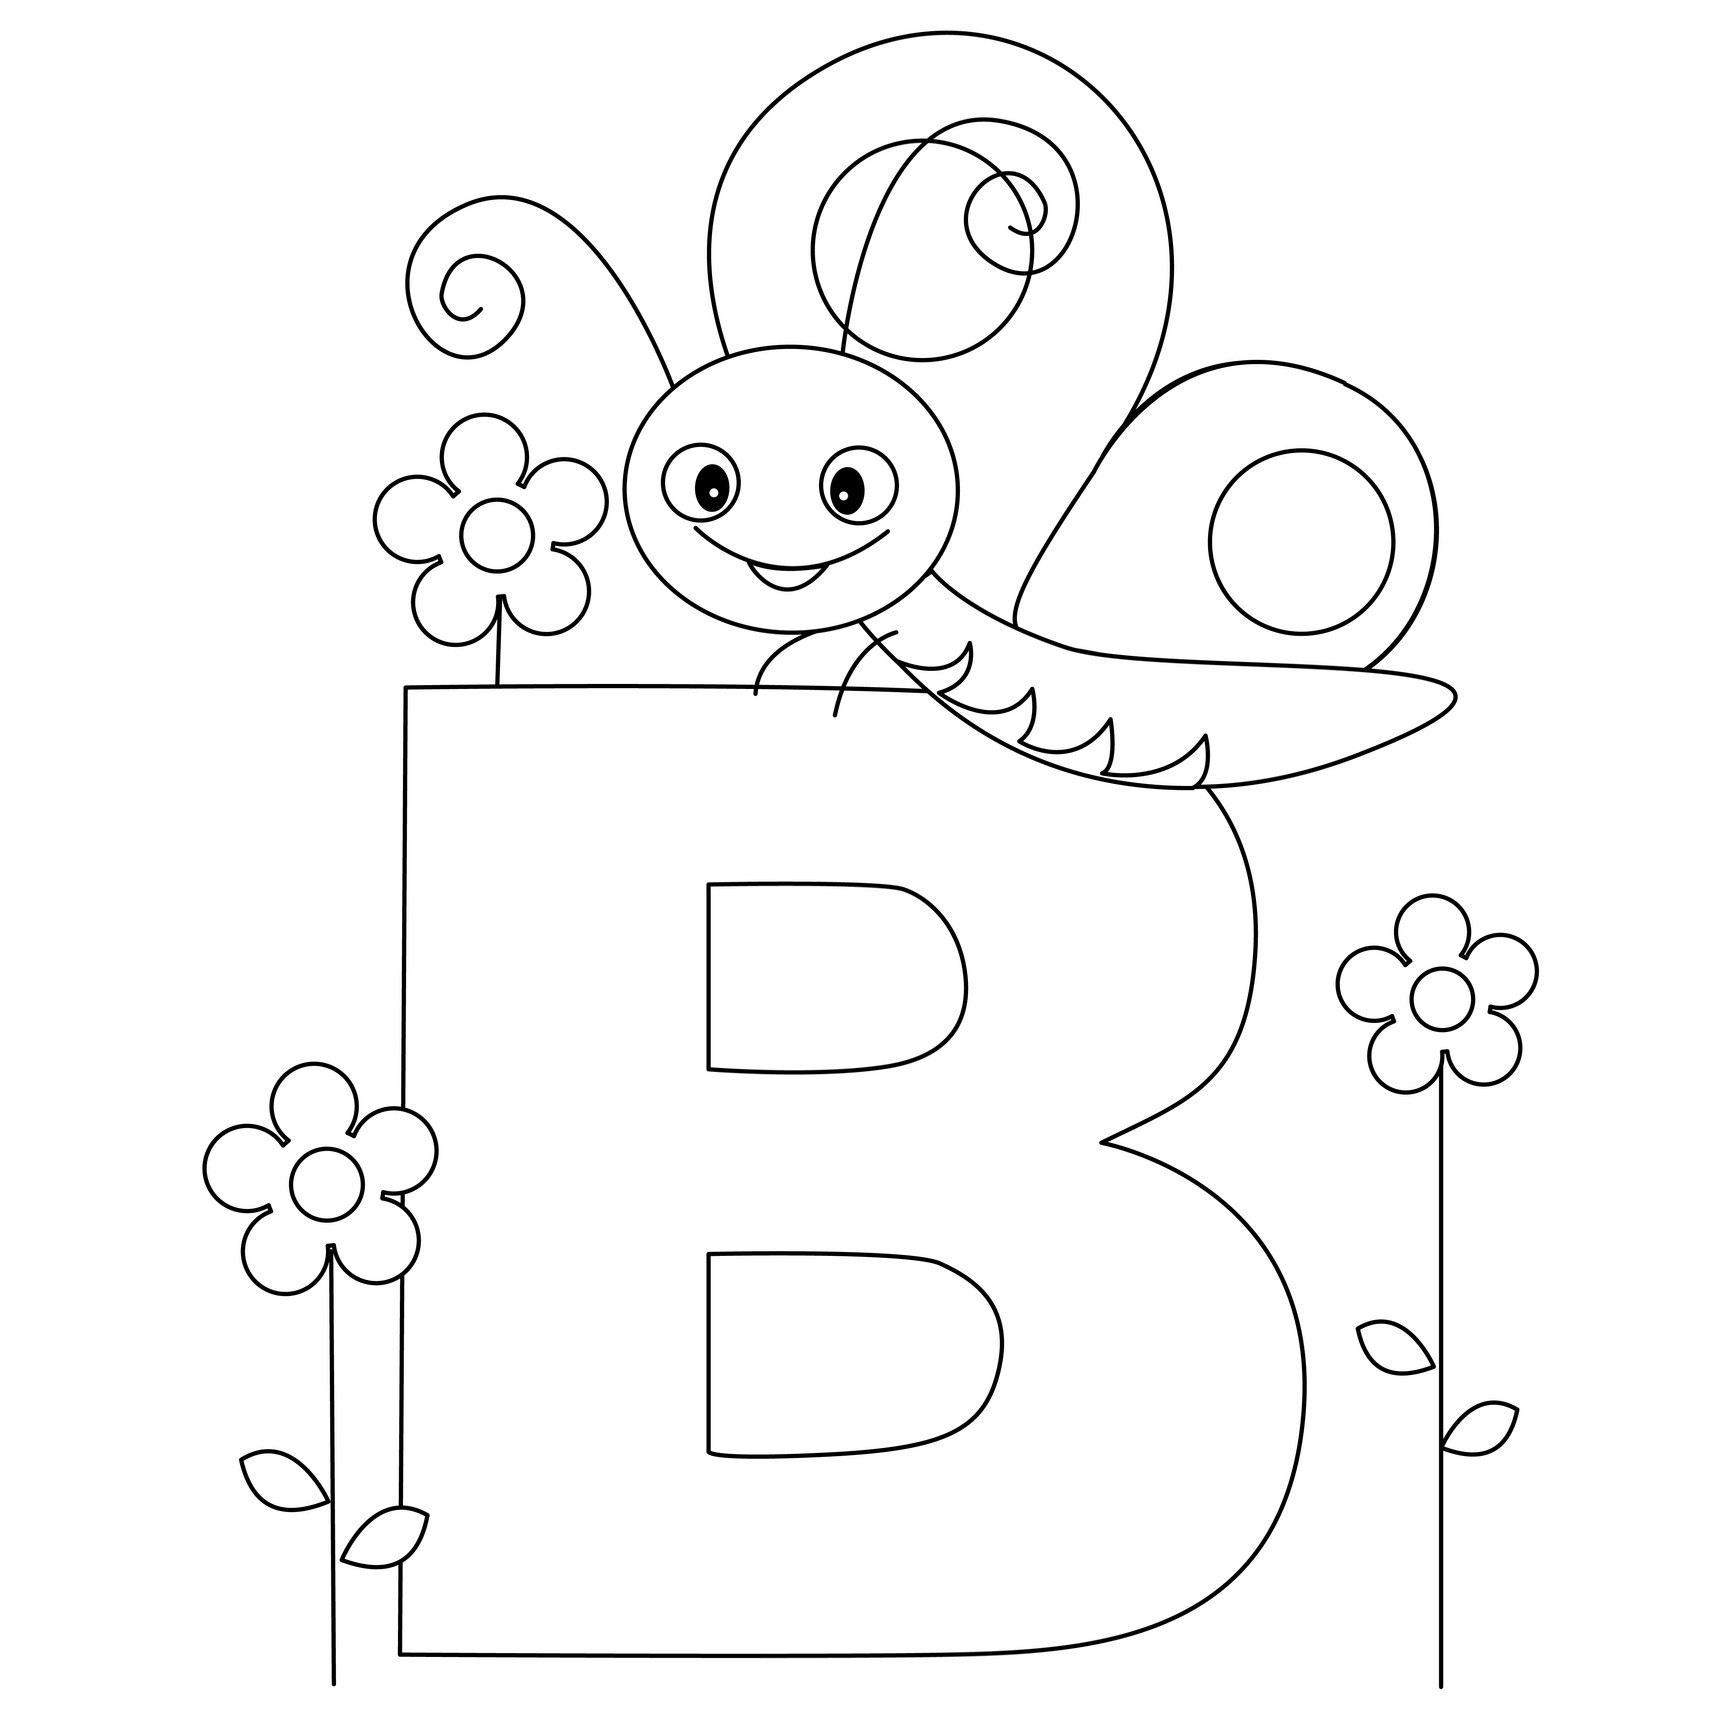 alphabet coloring pages letter b - Alphabet Coloring Pages